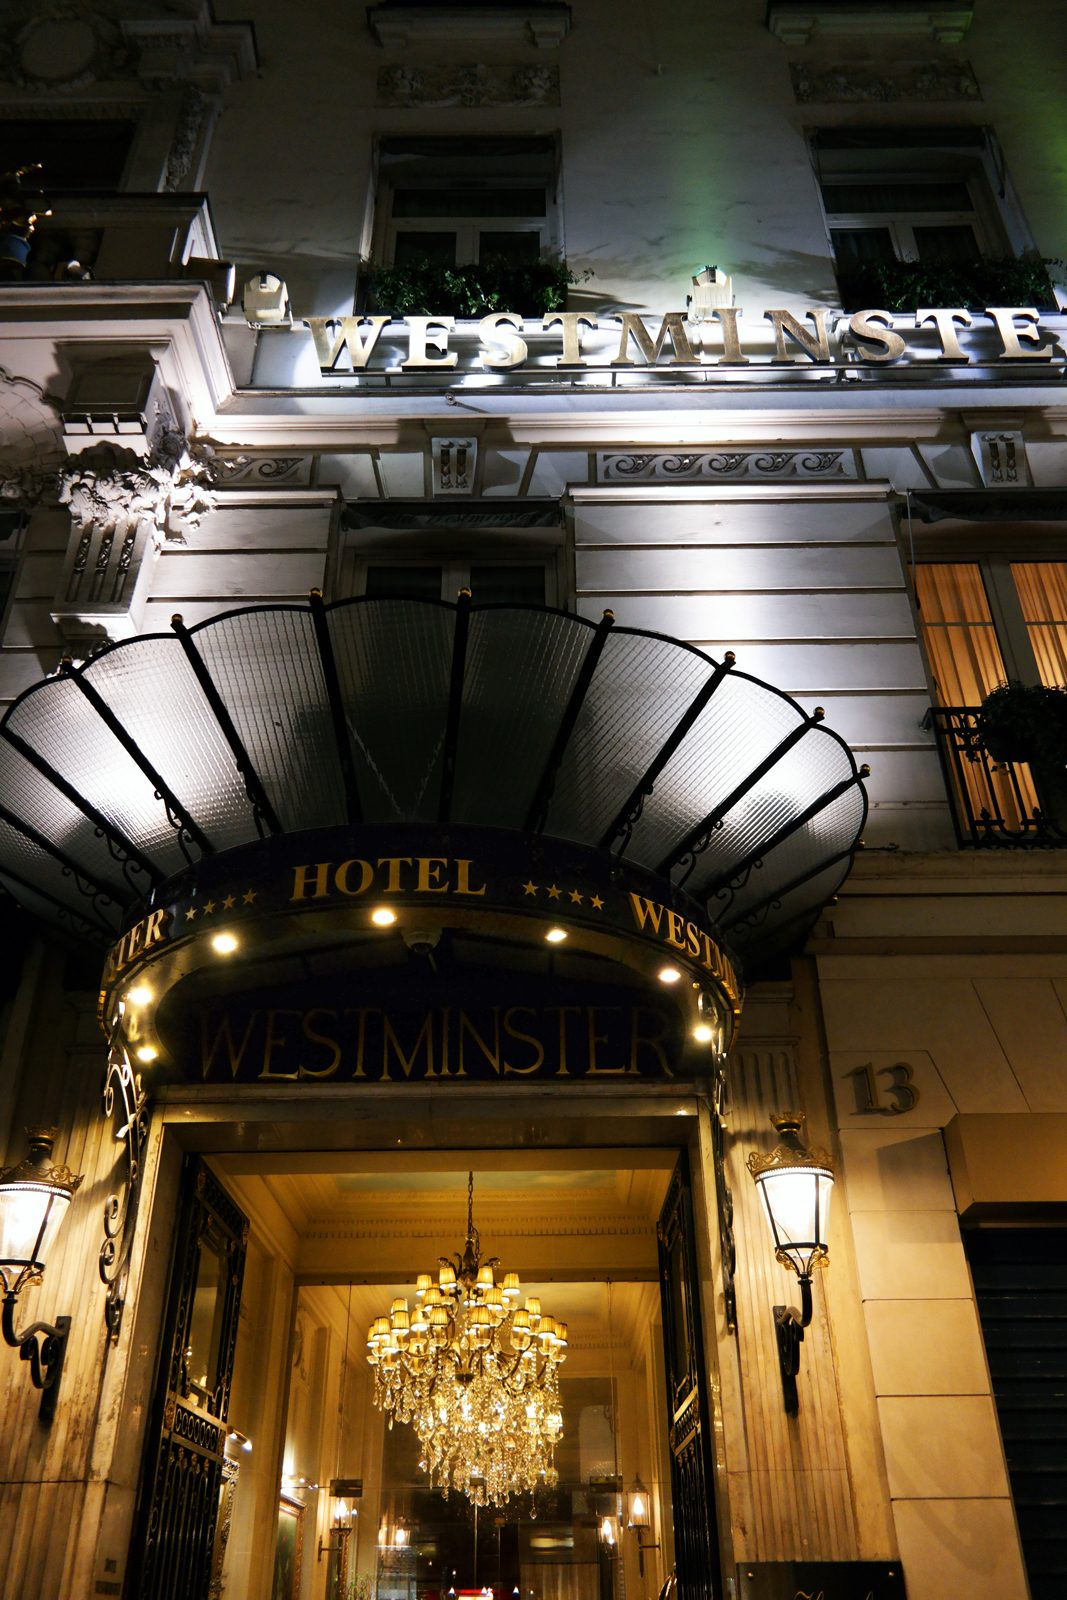 Hôtel Westminster Paris 4 étoiles façade de nuit rue de la Paix collection Warwick International Hotels place vendôme photo usofparis blog